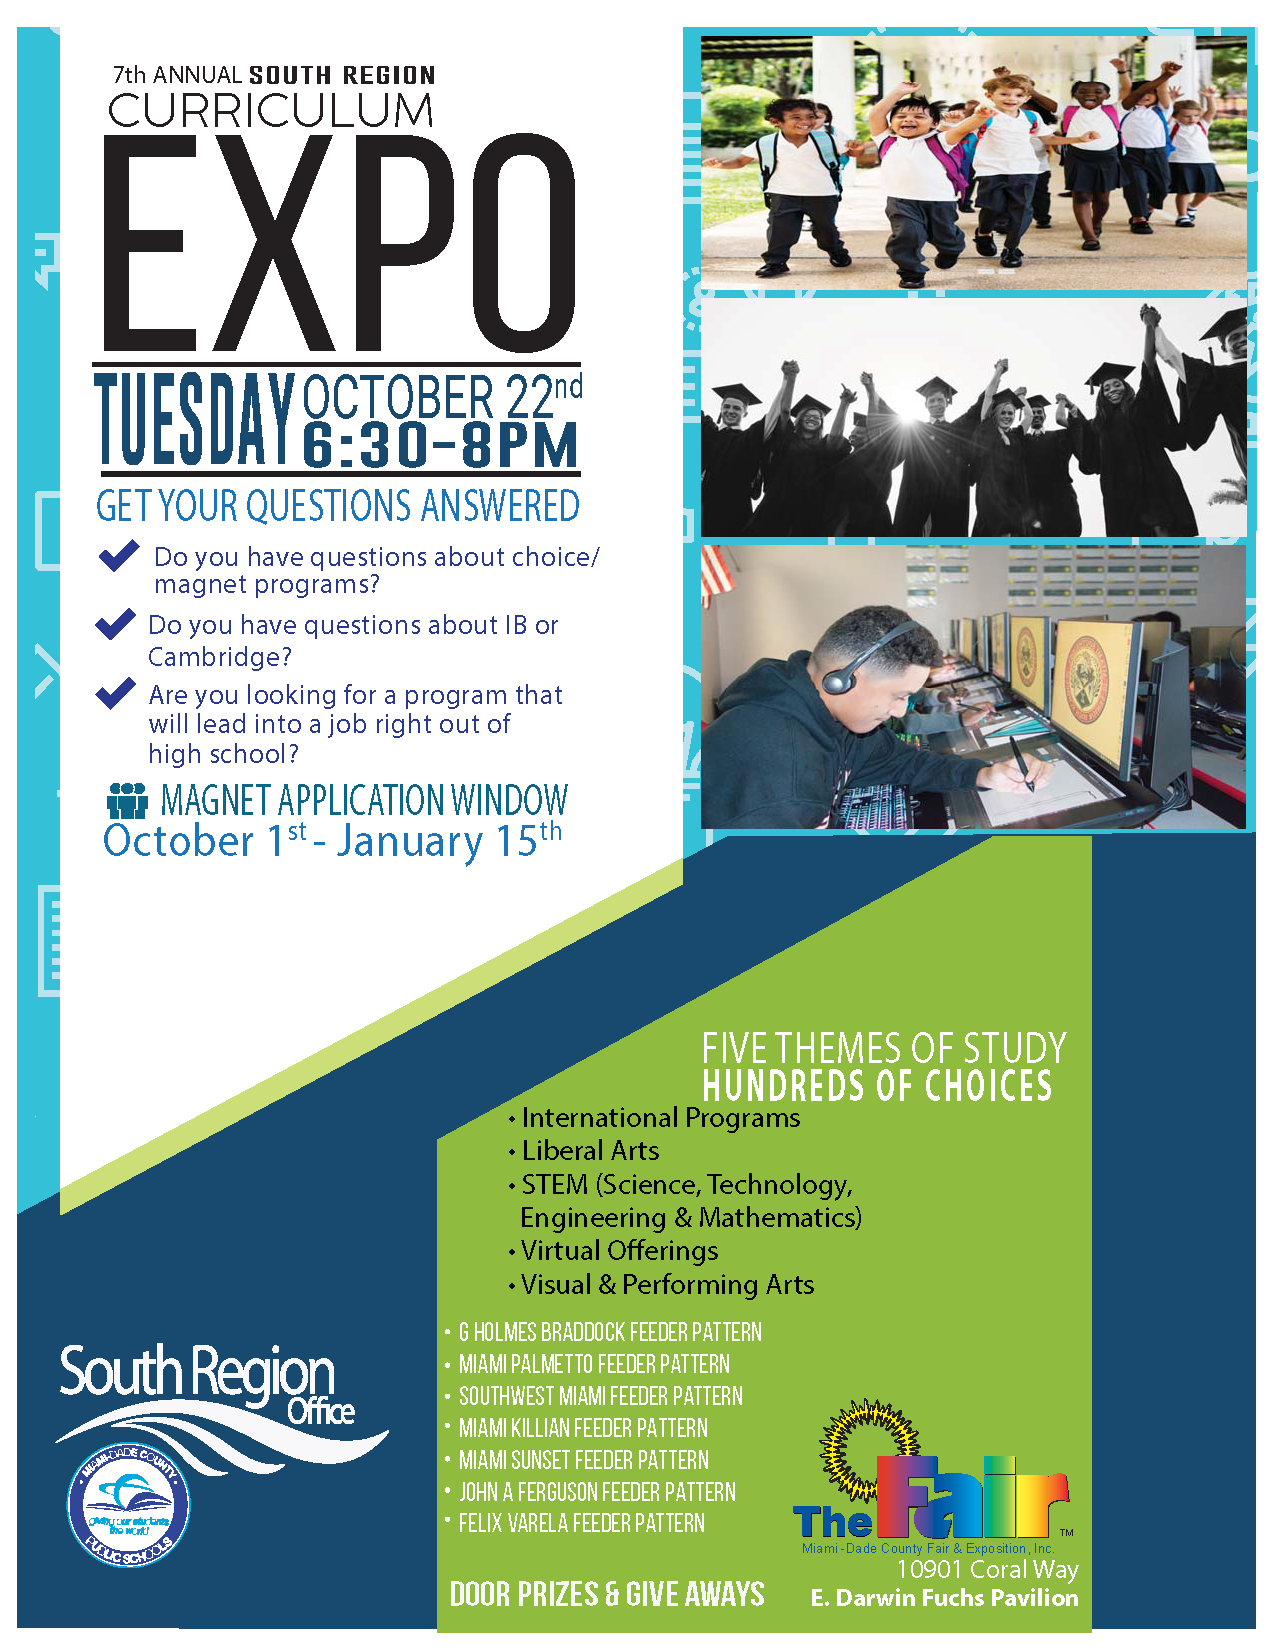 Curriculum Expo @ Miami-Dade County Fair & Expo E. Darwin Fuchs Pavilion